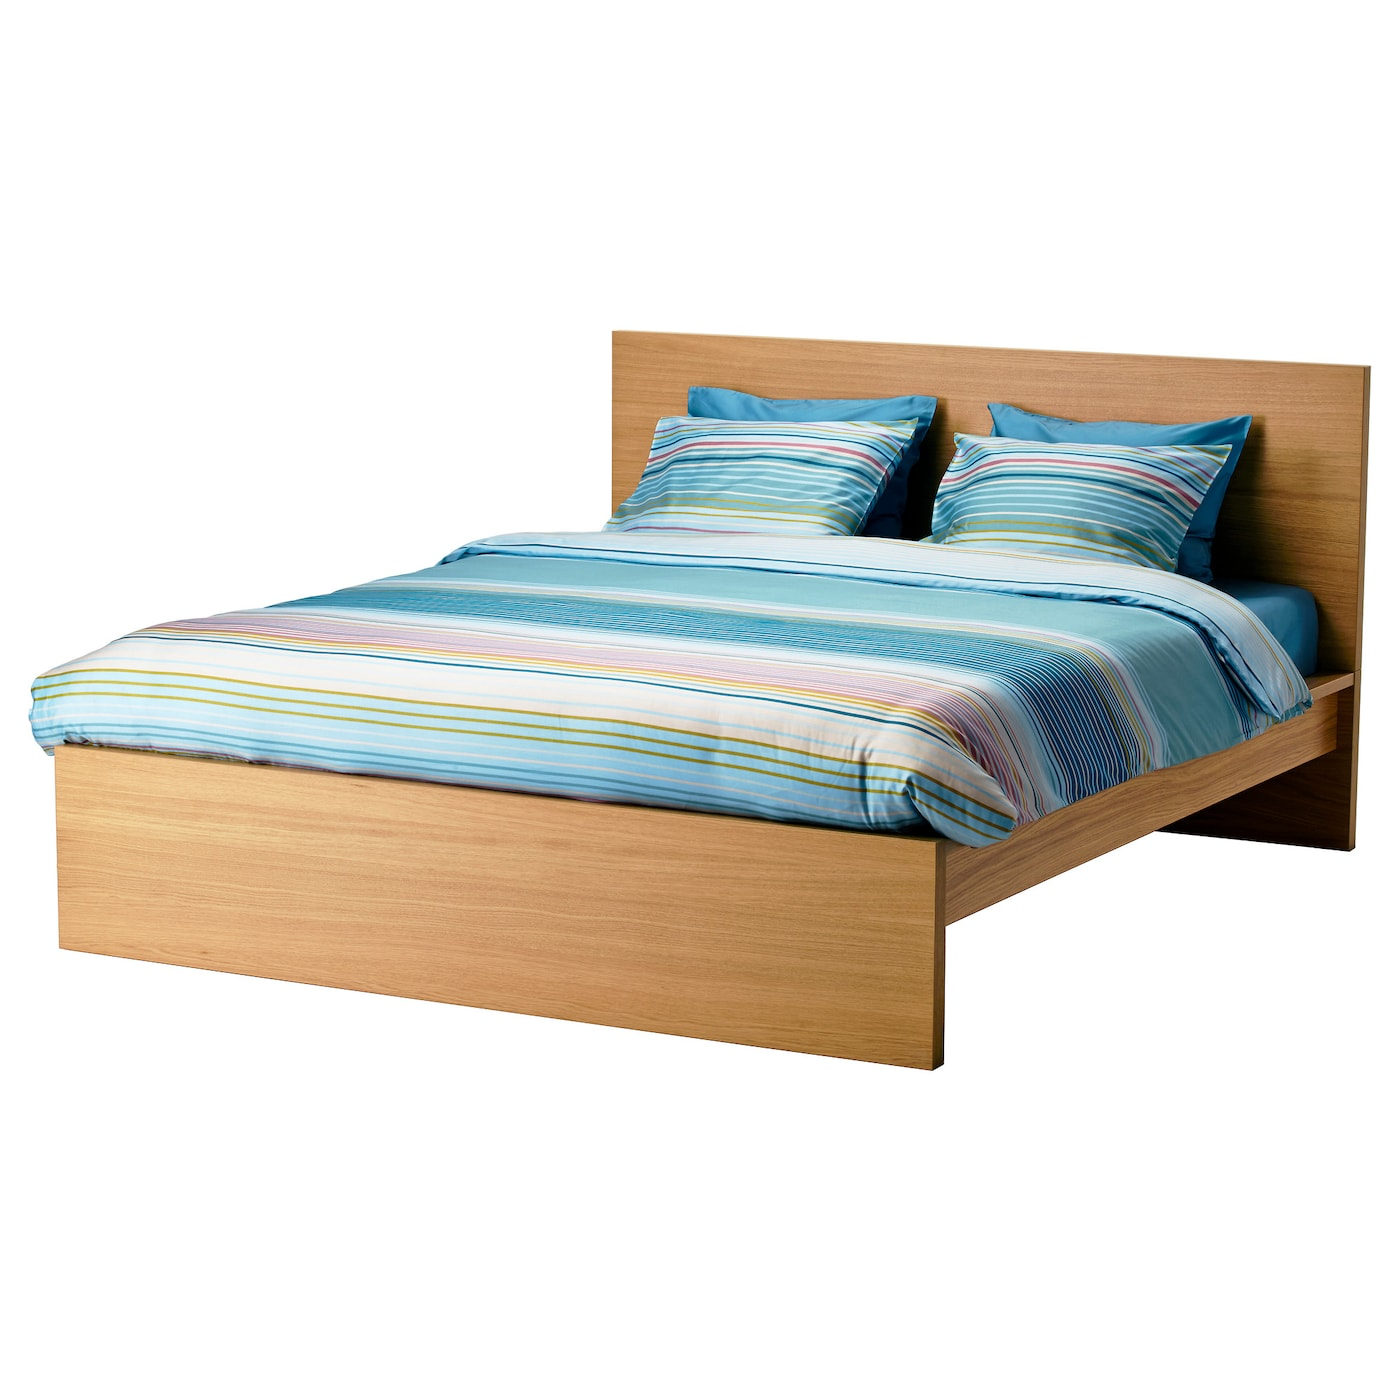 Malm bed frame high oak veneer lur y standard double ikea for Ofertas de camas en ikea